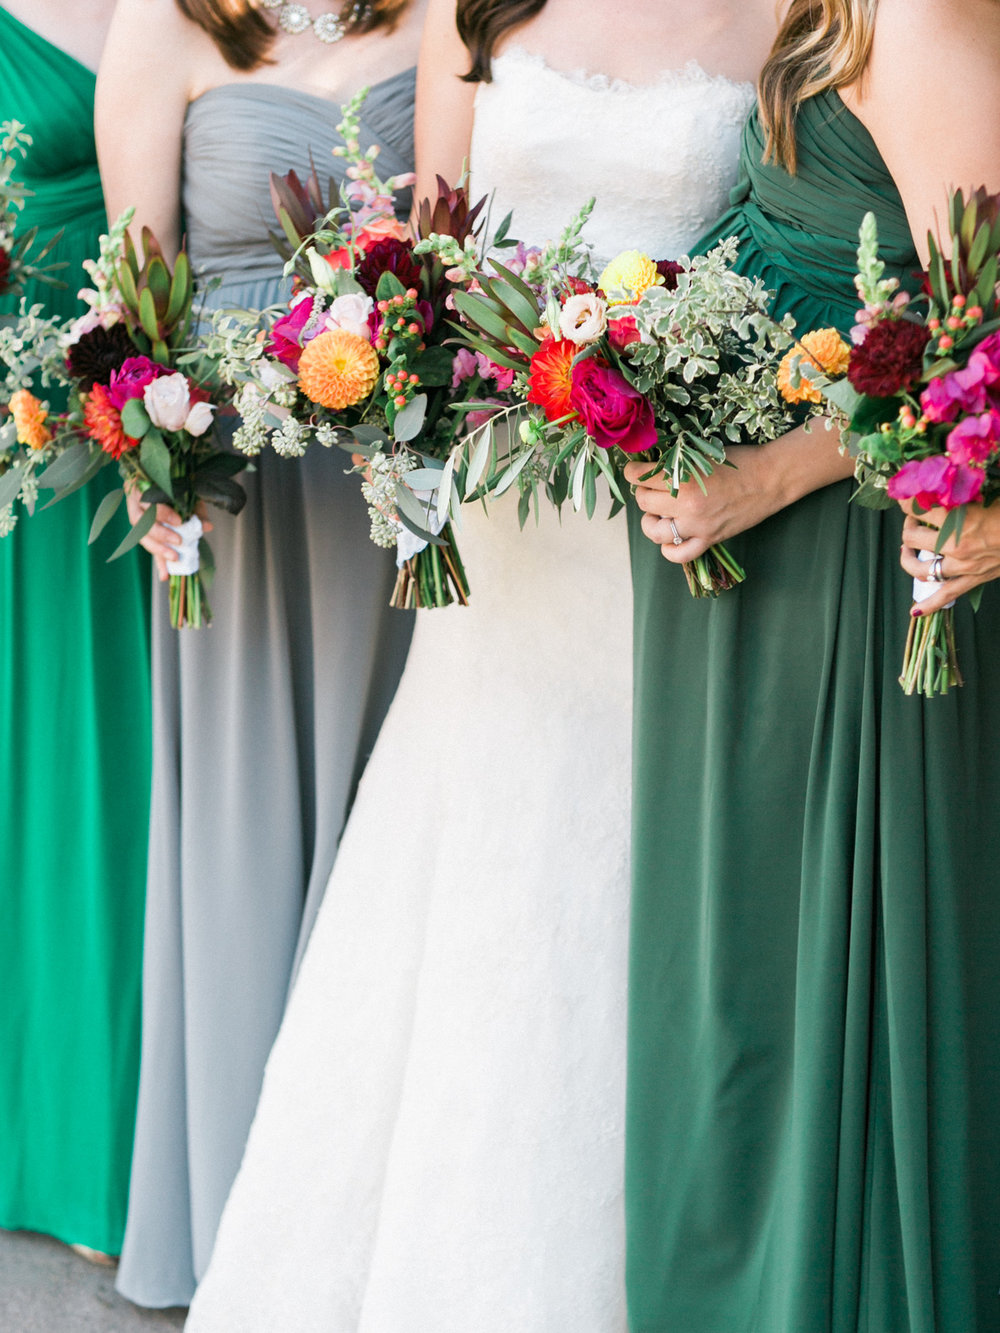 Gorgeous green, teal and gray bridesmaids dresses with jewel tone bouquets